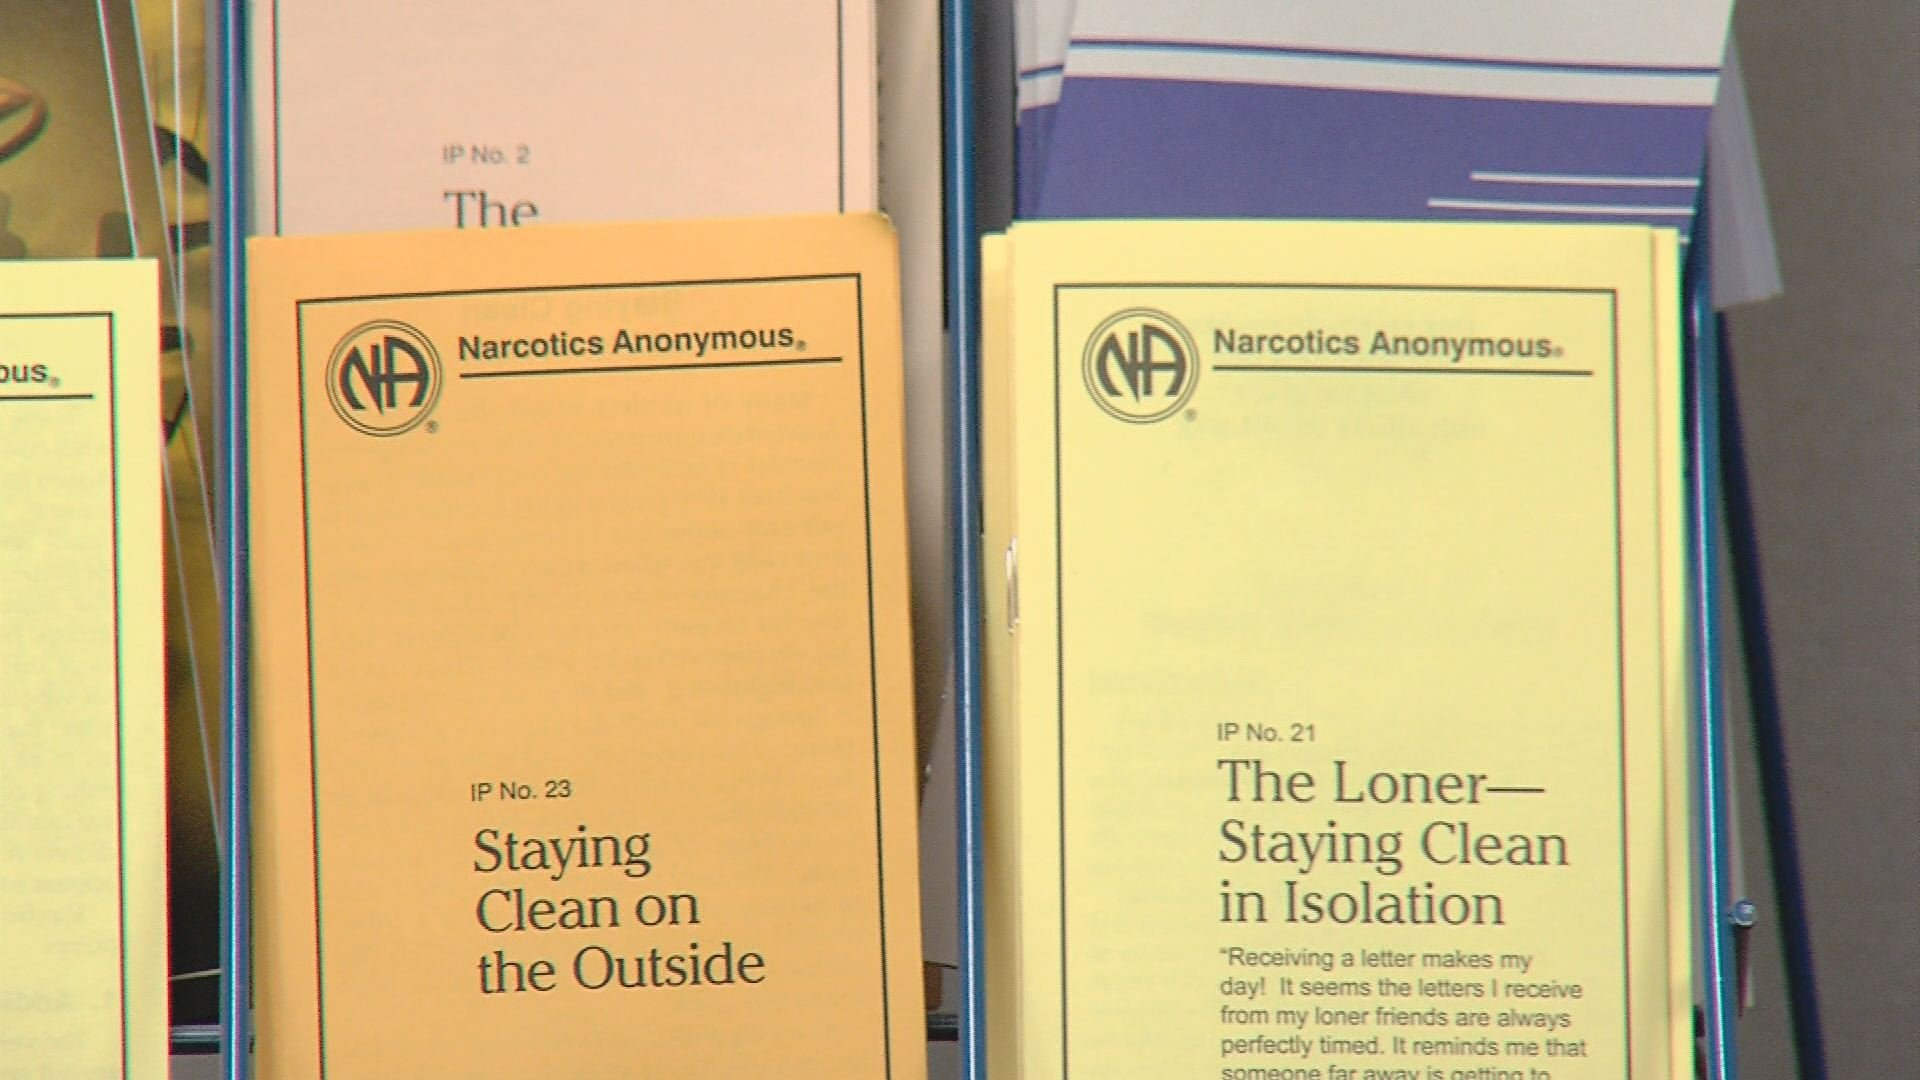 Substance abuse counselors share knowledge - Wandtv.com, NewsCenter17 ...